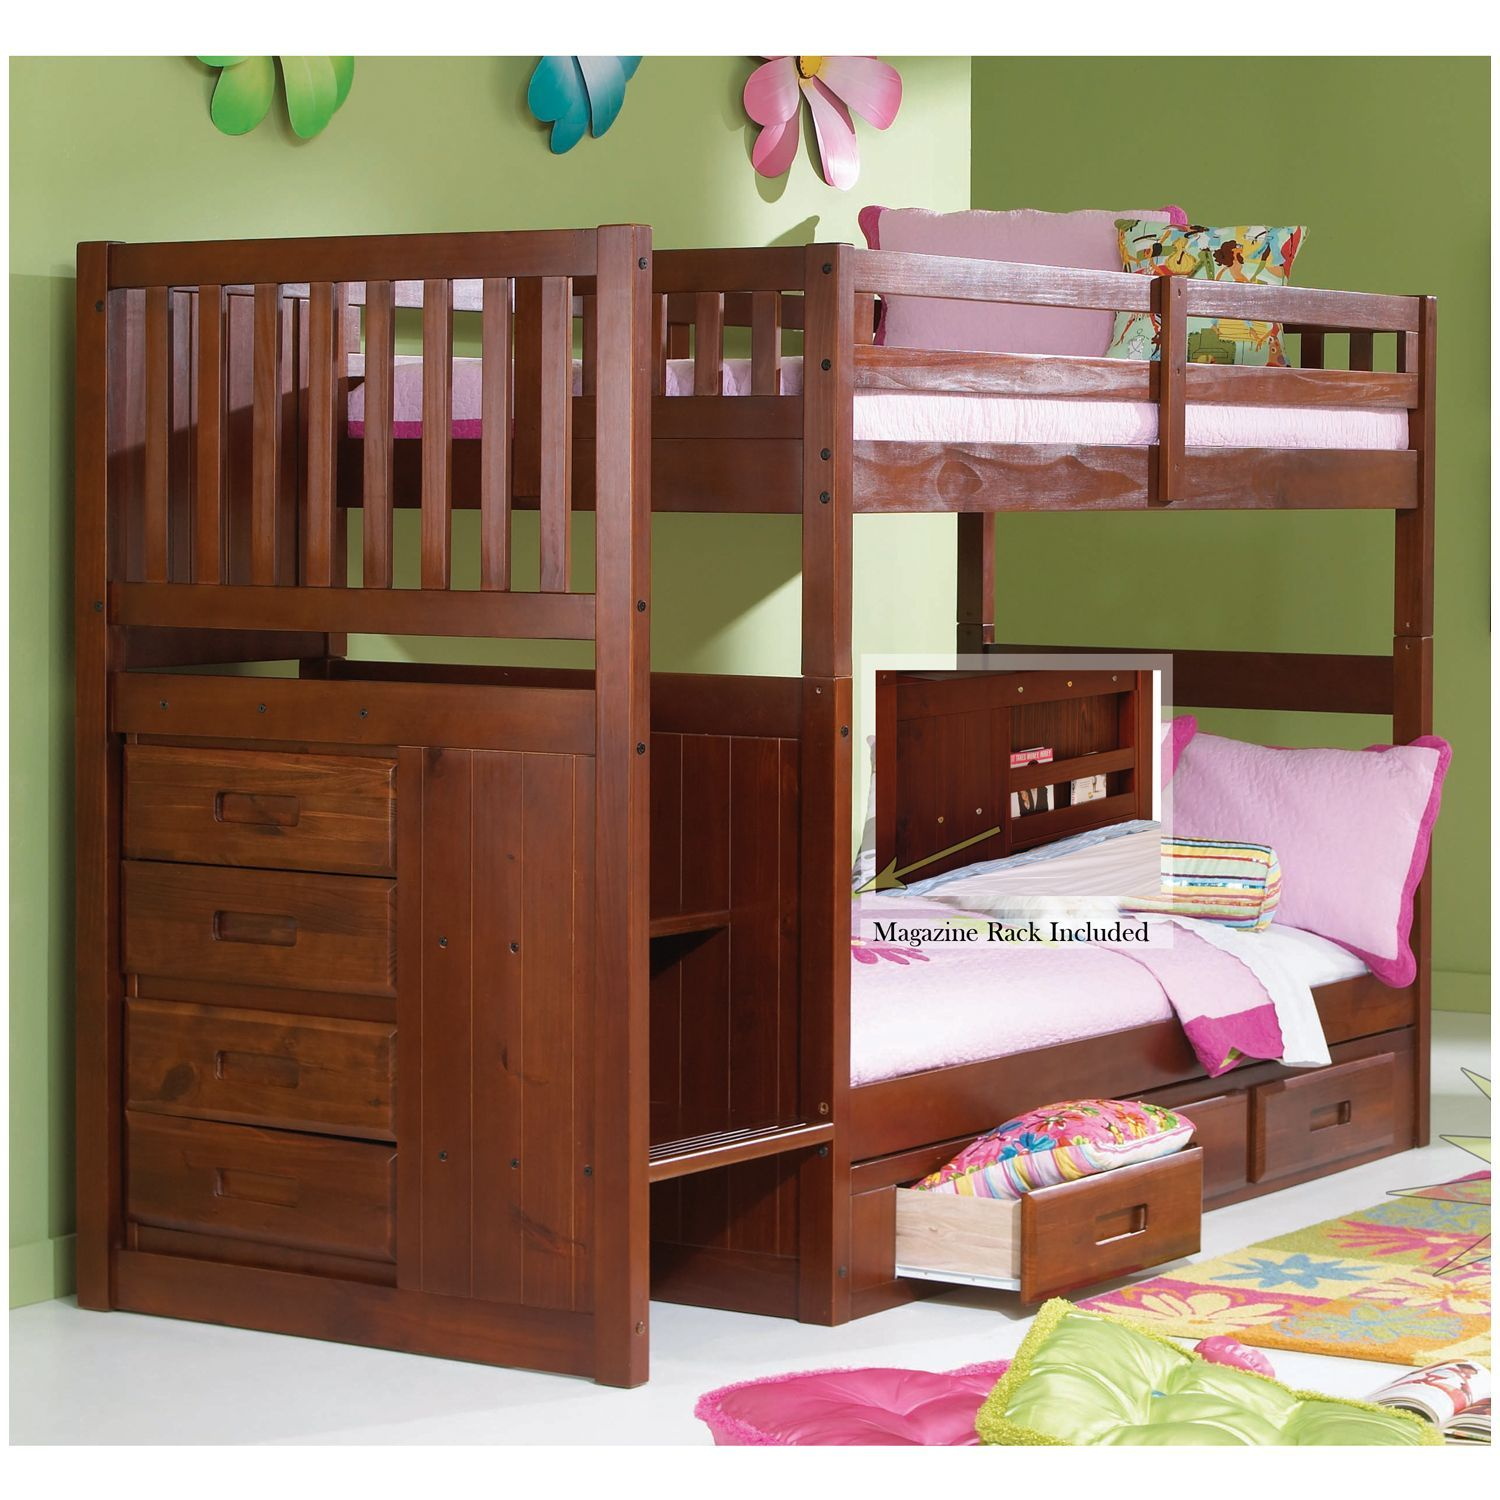 Staircase Bunk Bed Merlot Finish Sam S Club The Boys